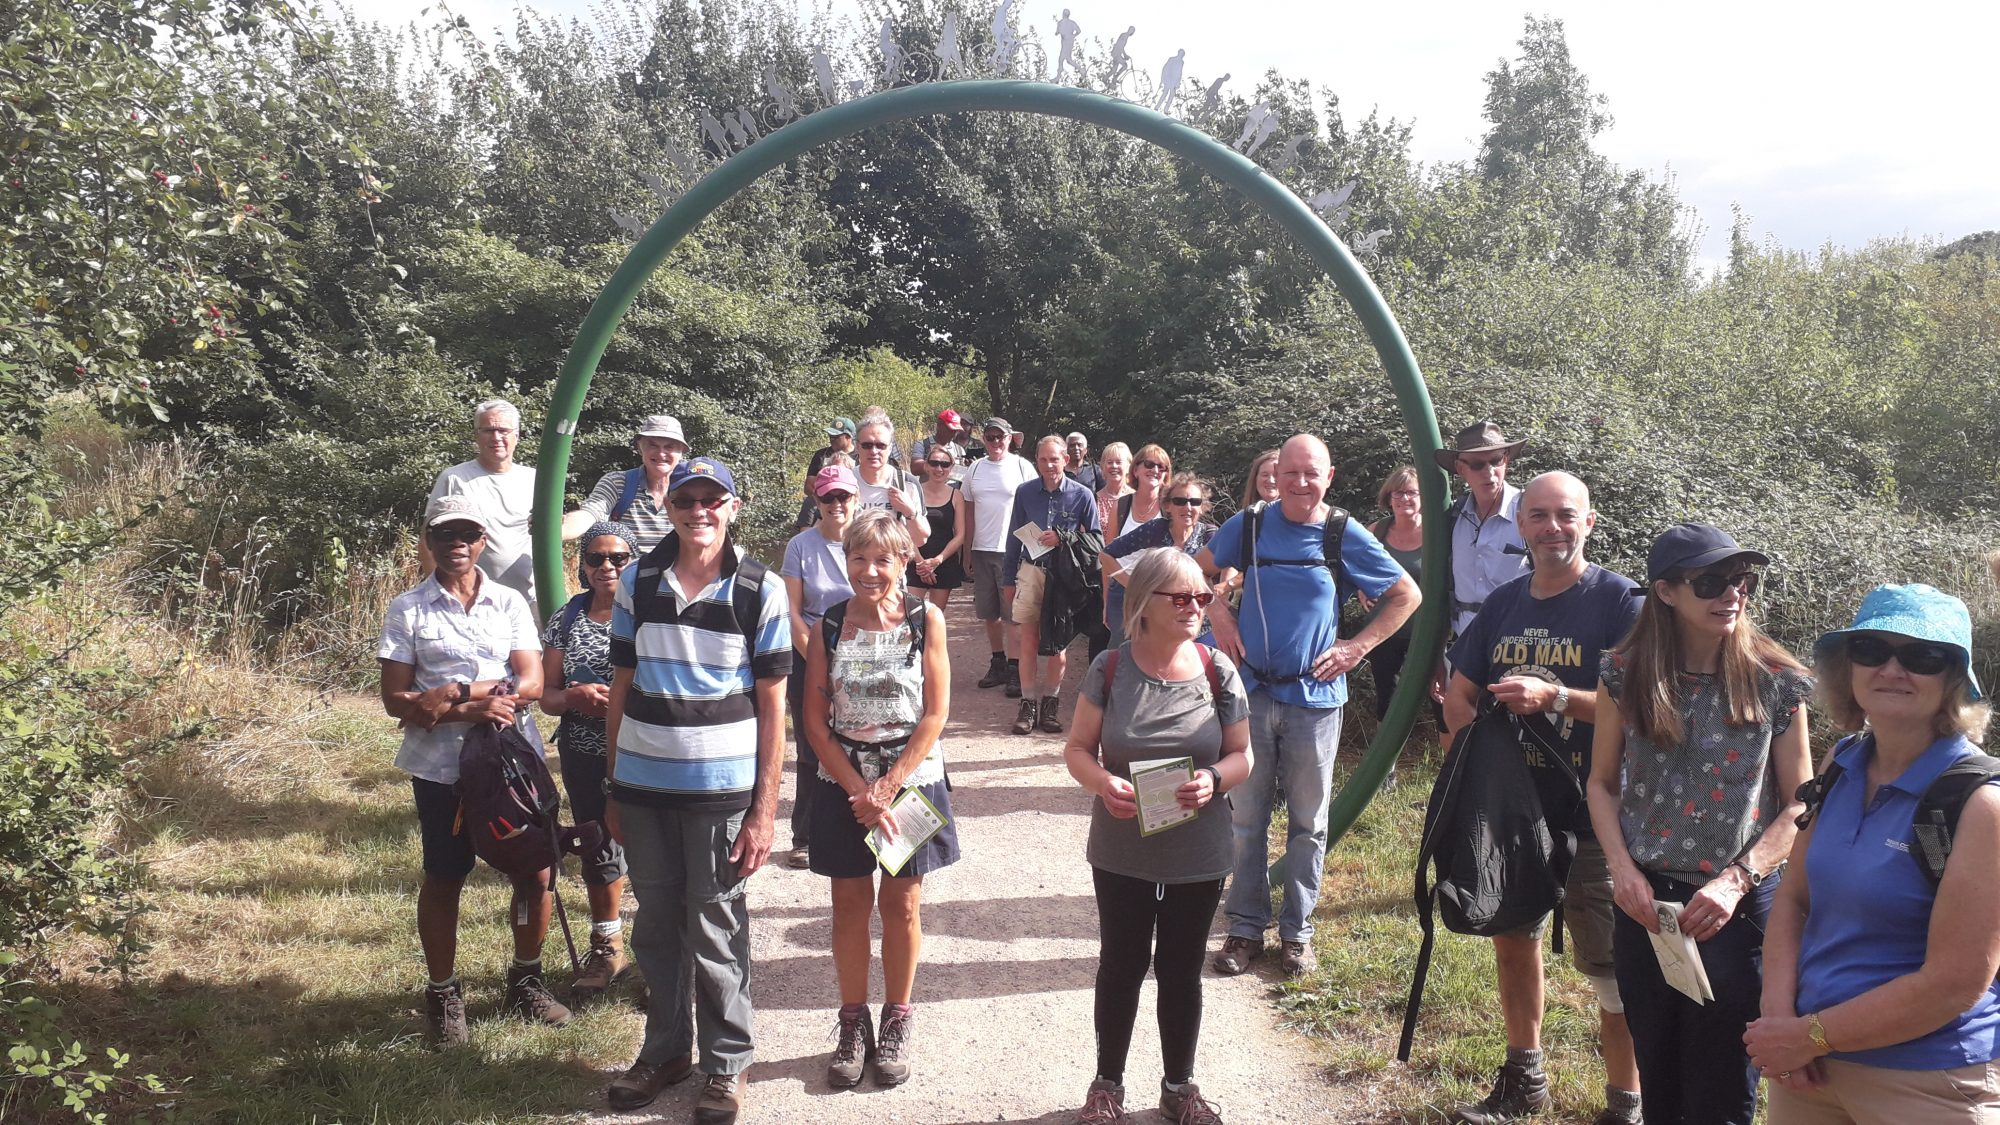 walkers who completed an 8 mile route